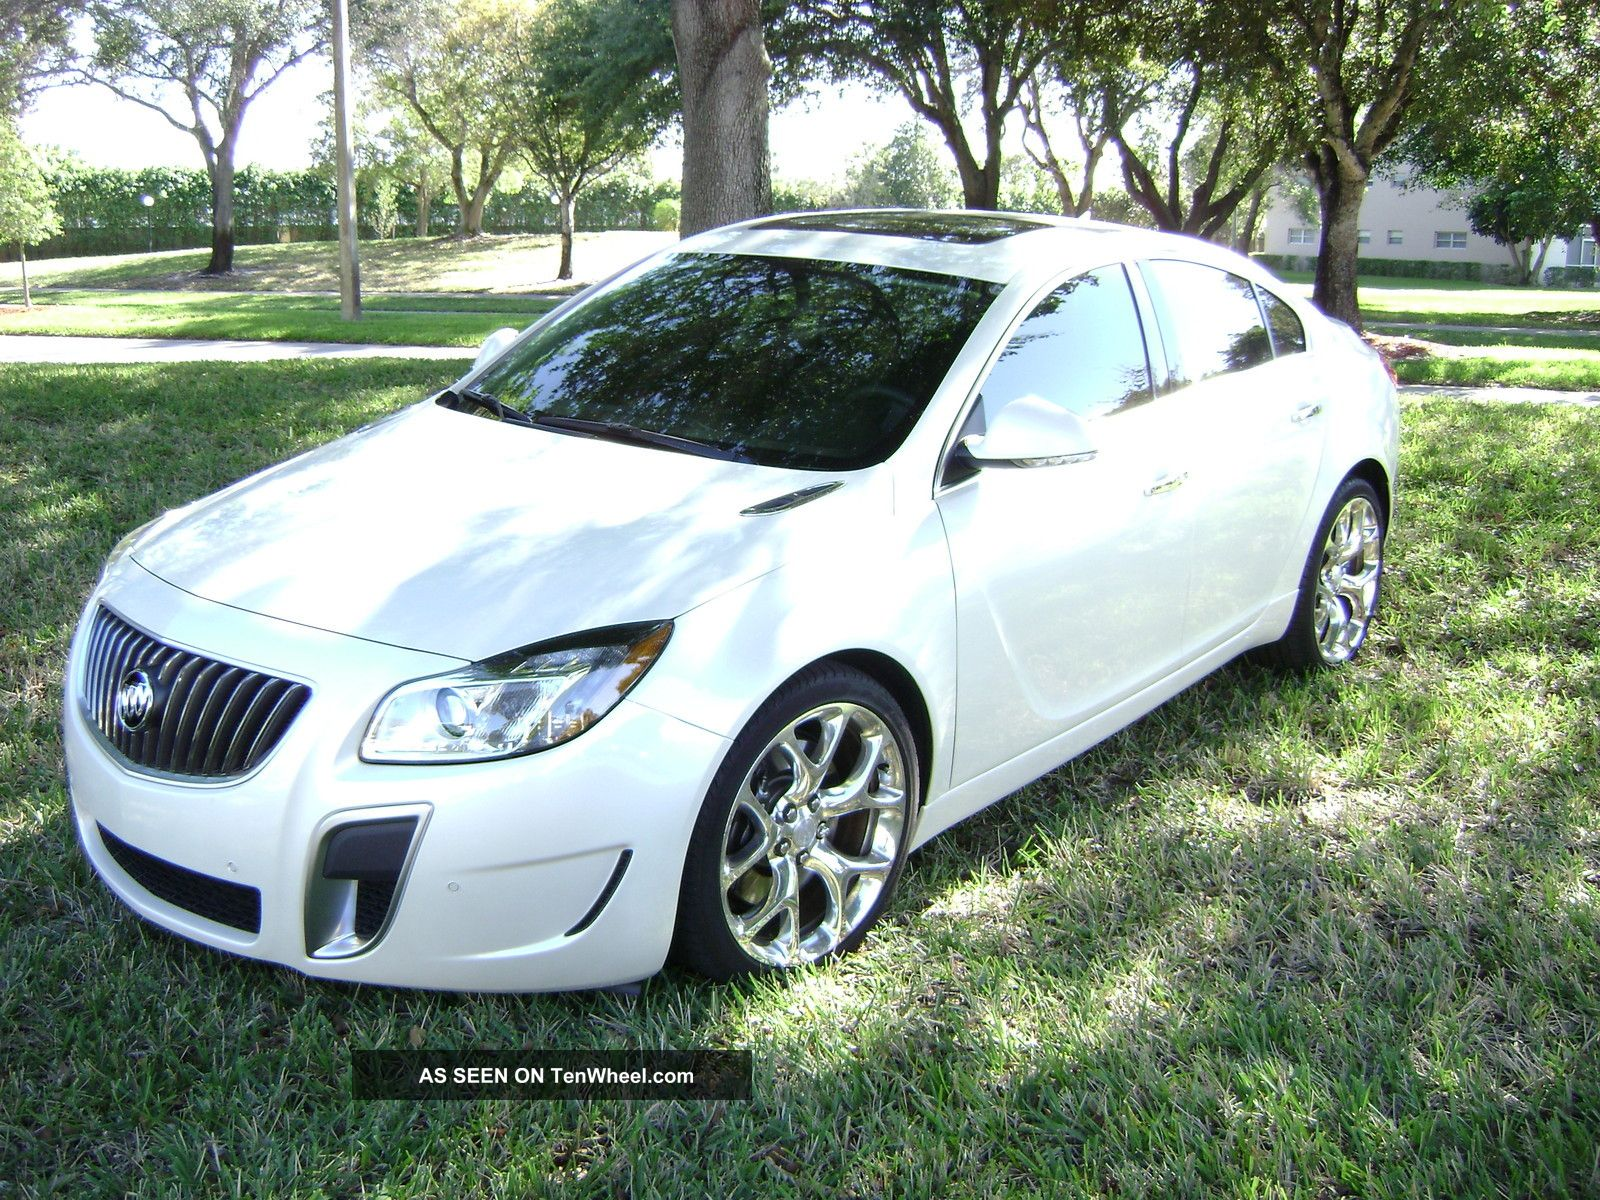 2012 buick regal gs loaded premium stereo pearl white. Black Bedroom Furniture Sets. Home Design Ideas